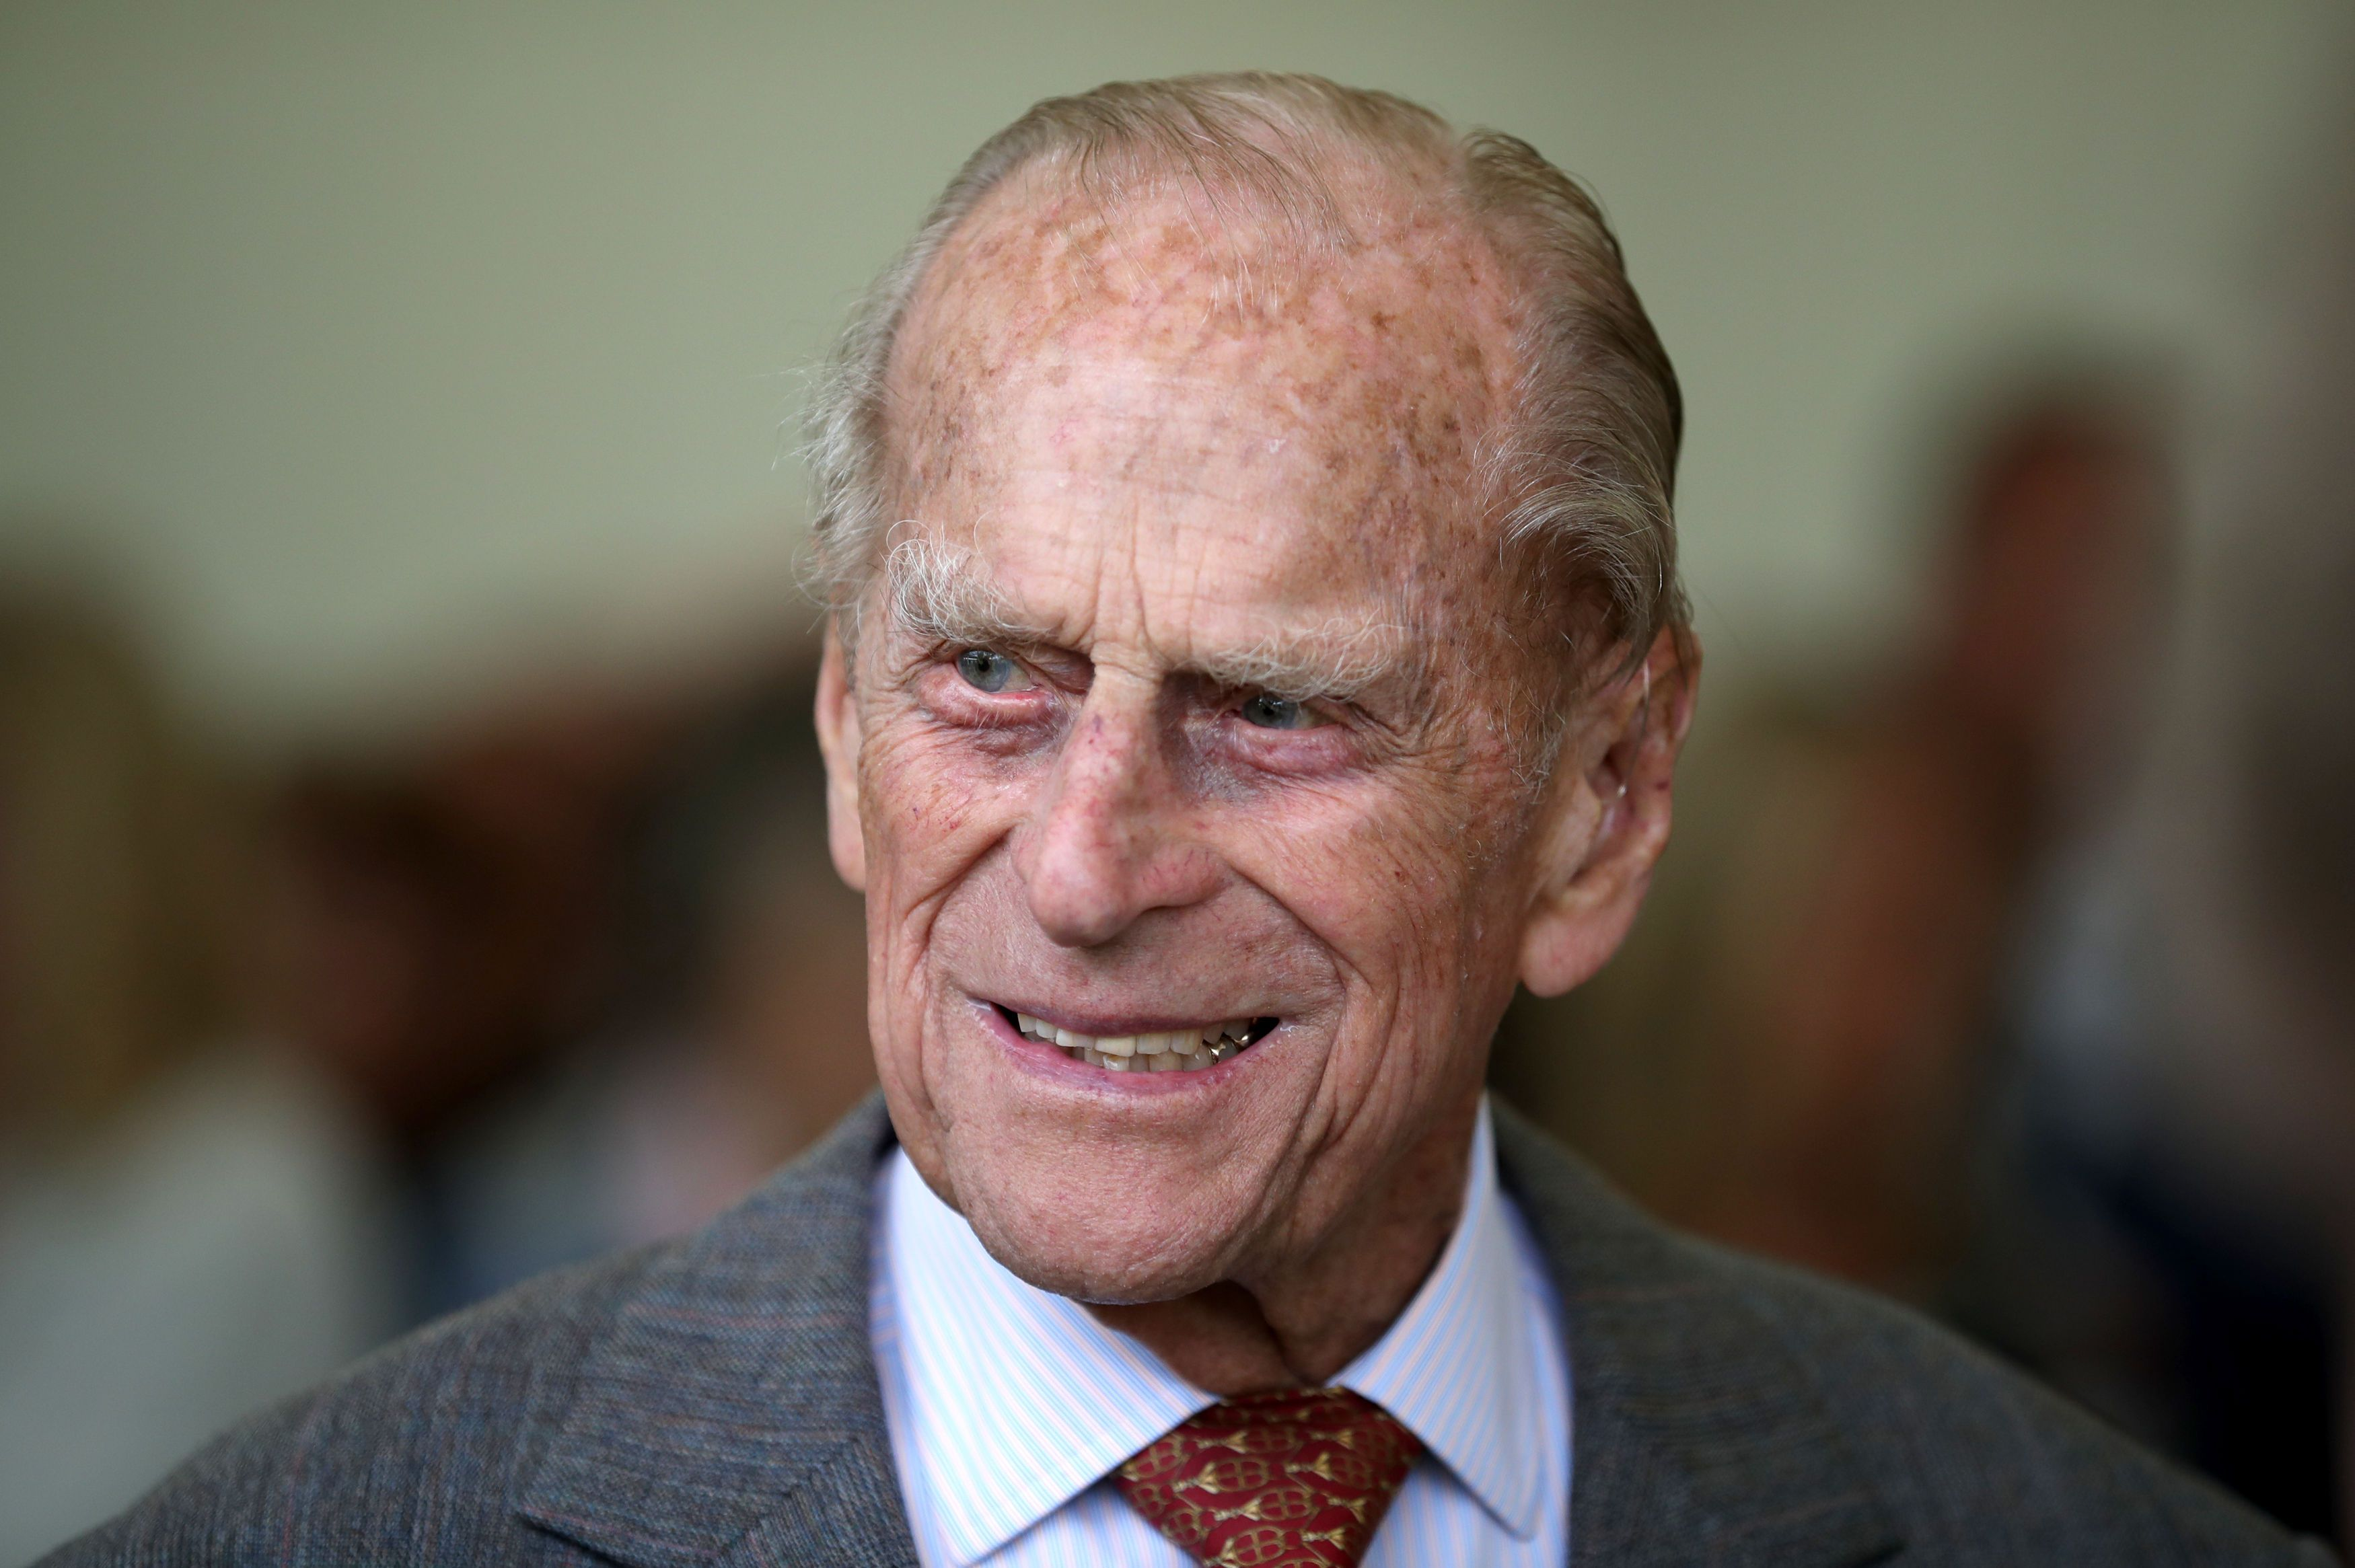 Prince Philip at the Presentation Reception for The Duke of Edinburgh Gold Award holders in the gardens at the Palace of Holyroodhouse on July 6, 2017 | Photo: Getty Images